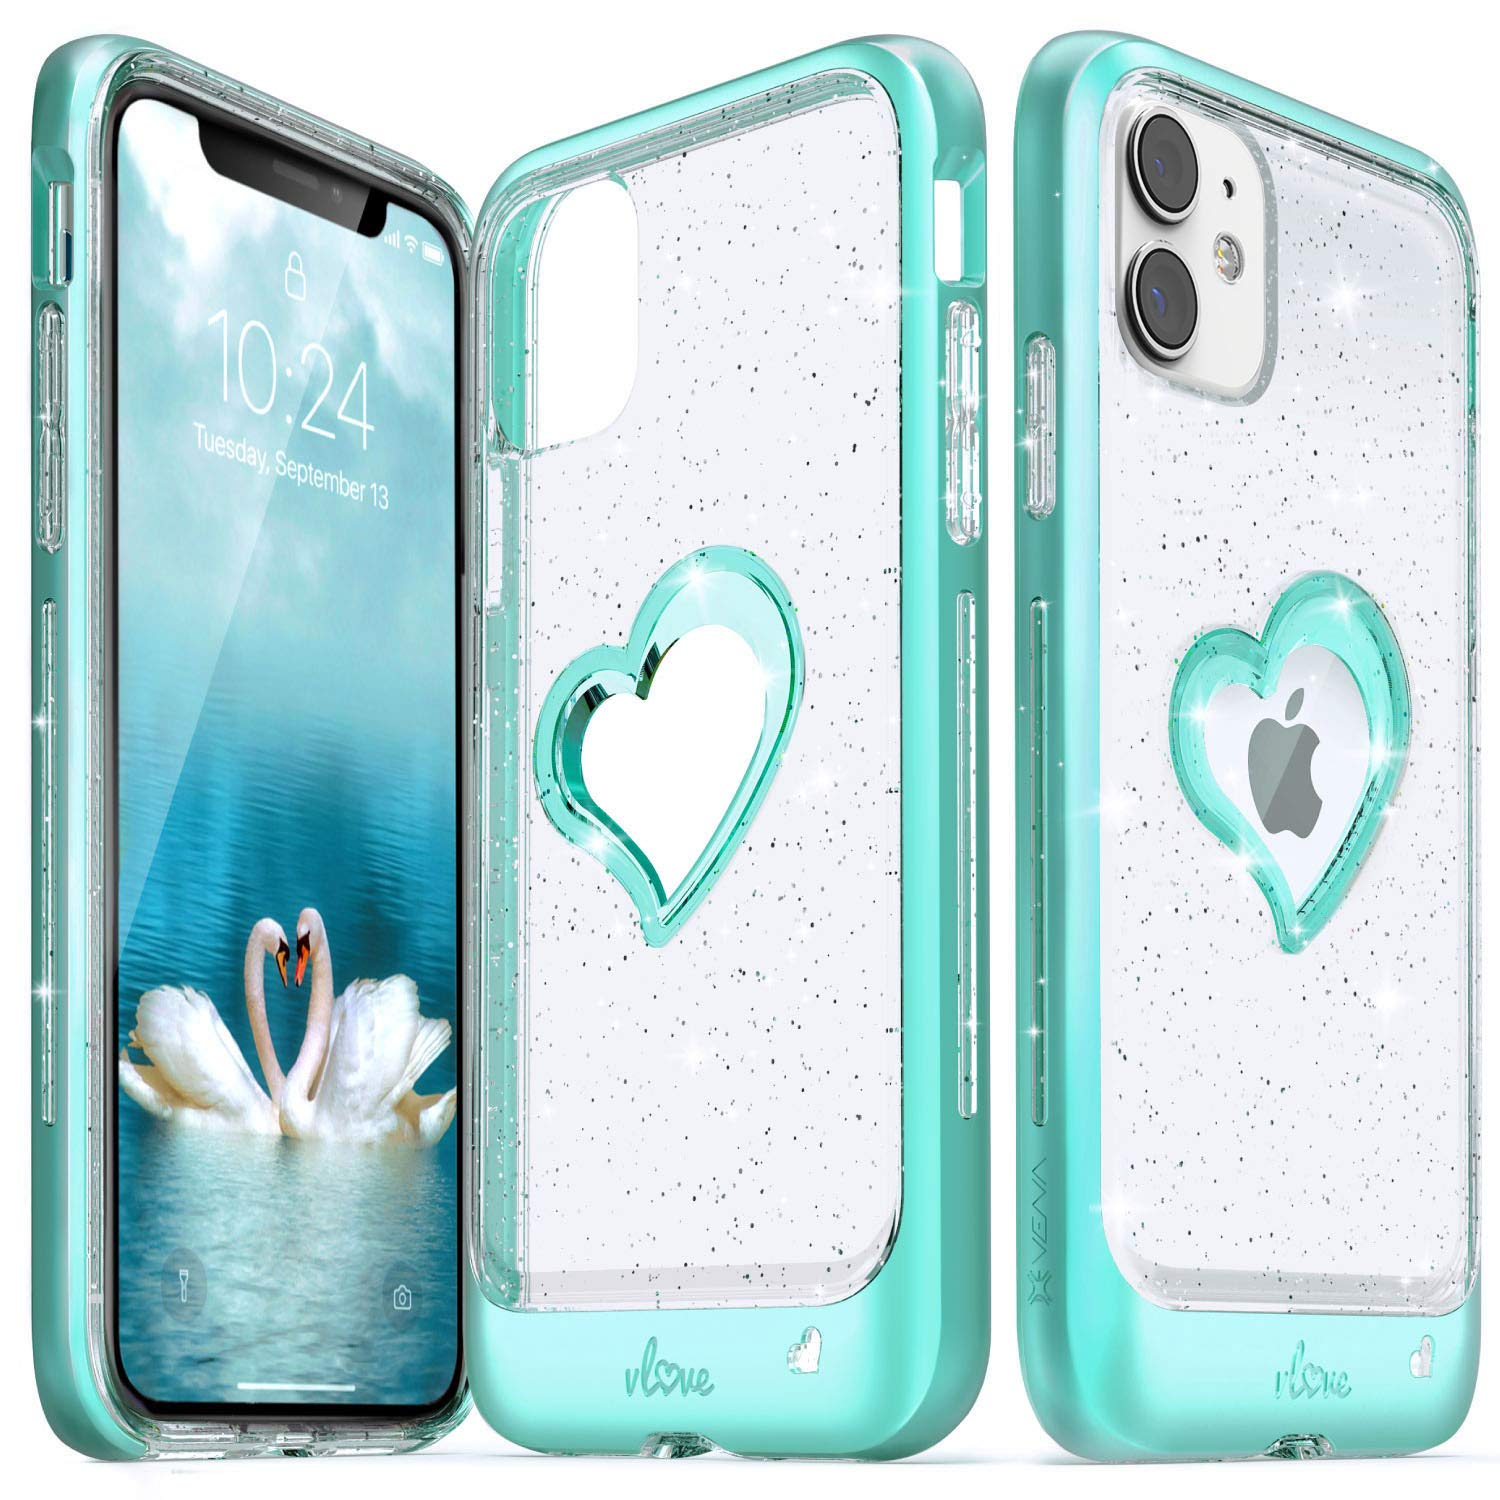 Vena iPhone 11 Glitter Case, vLove Glitter Heart Case Slim Dual Layer Protection Designed for iPhone 11 (6.1 inches) - Teal (PC) and Clear TPU with Glitter